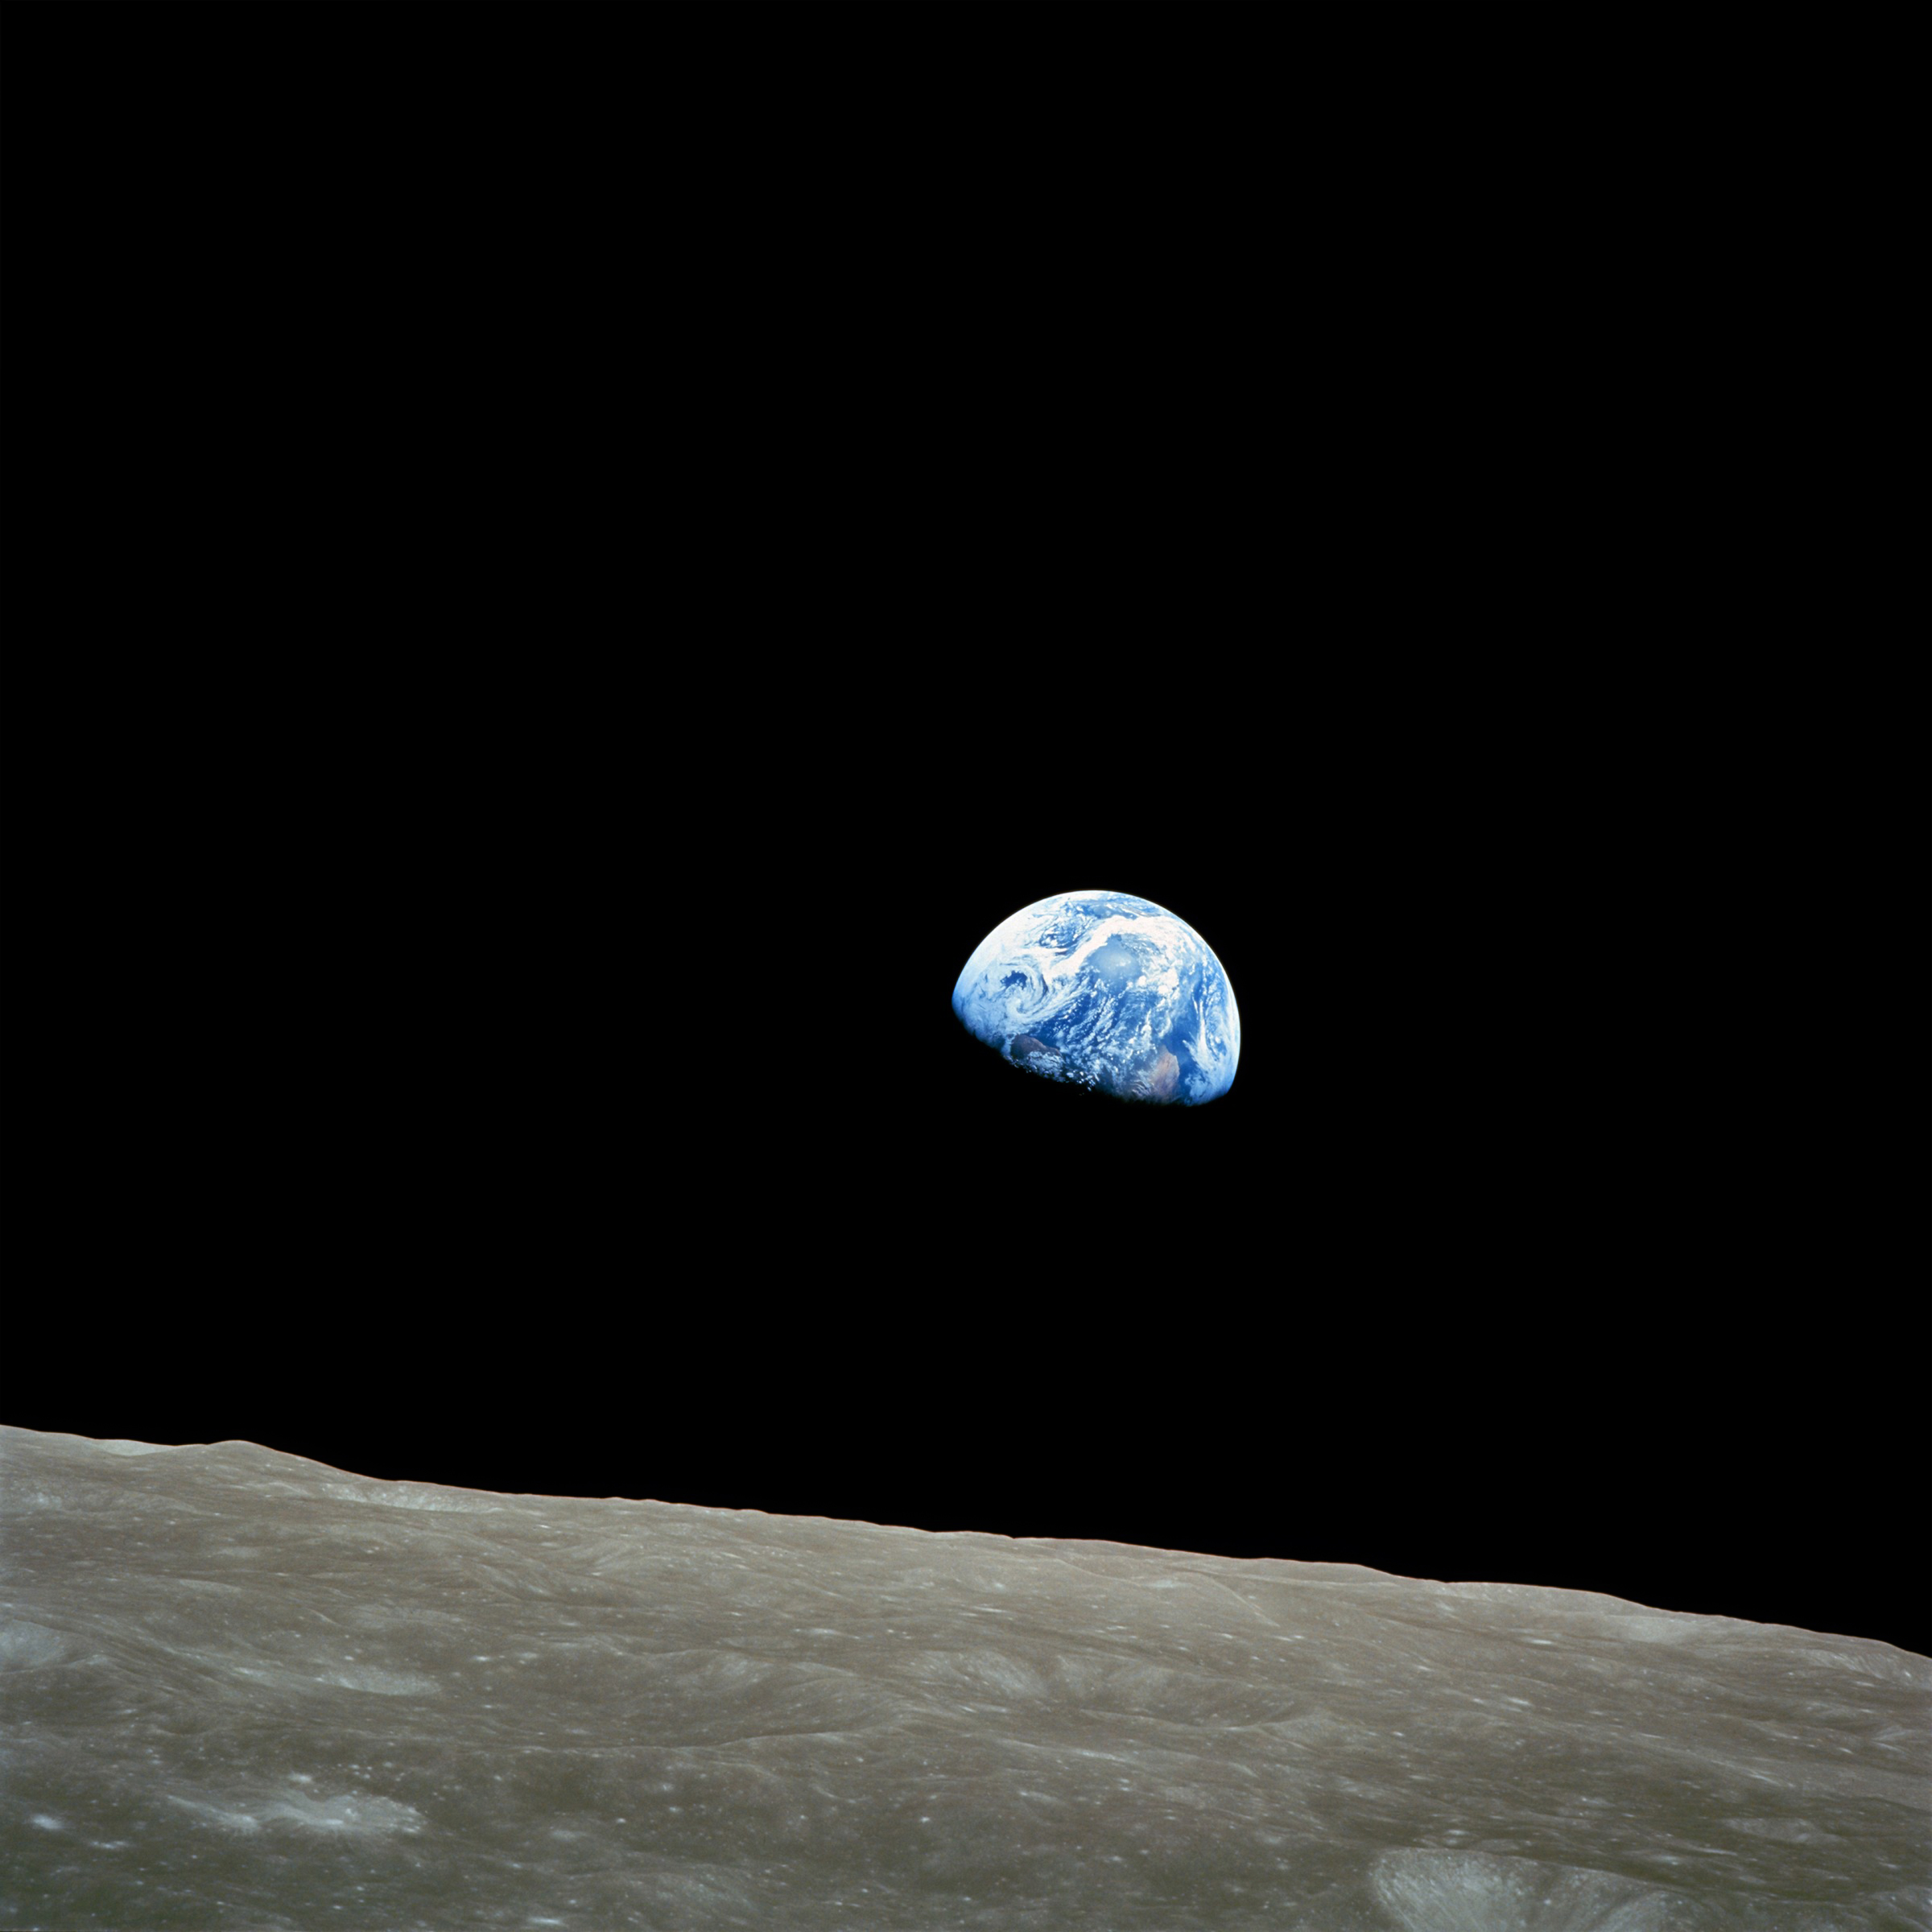 http://upload.wikimedia.org/wikipedia/commons/a/a8/NASA-Apollo8-Dec24-Earthrise.jpg